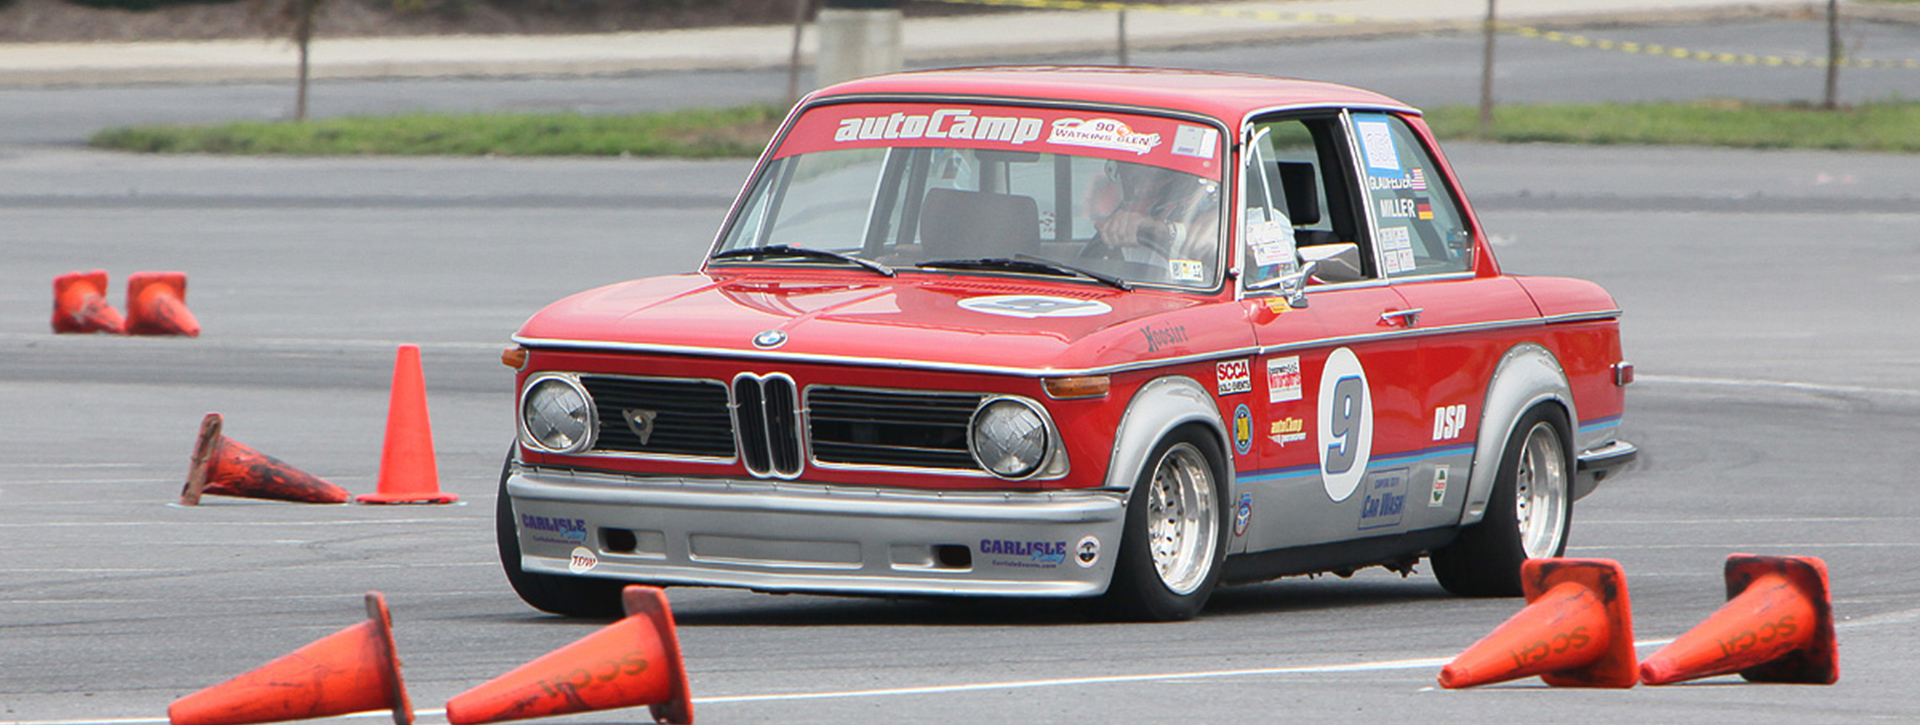 <p>Name: Vince Gladfelter From: Mechanicsburg, PA Runs: Autocross, Road Racing, Hillclimb Drives: Vintage race, autocross and hillclimbs a 1972 BMW 2002TII in FSP and Group 8 in SVRA. Autocross 2006 Mini Cooper, also co-drives in some road racing and hillclimbing in Bill Miller III 2001 Audi S4 in ITE. Member [&hellip;]</p>